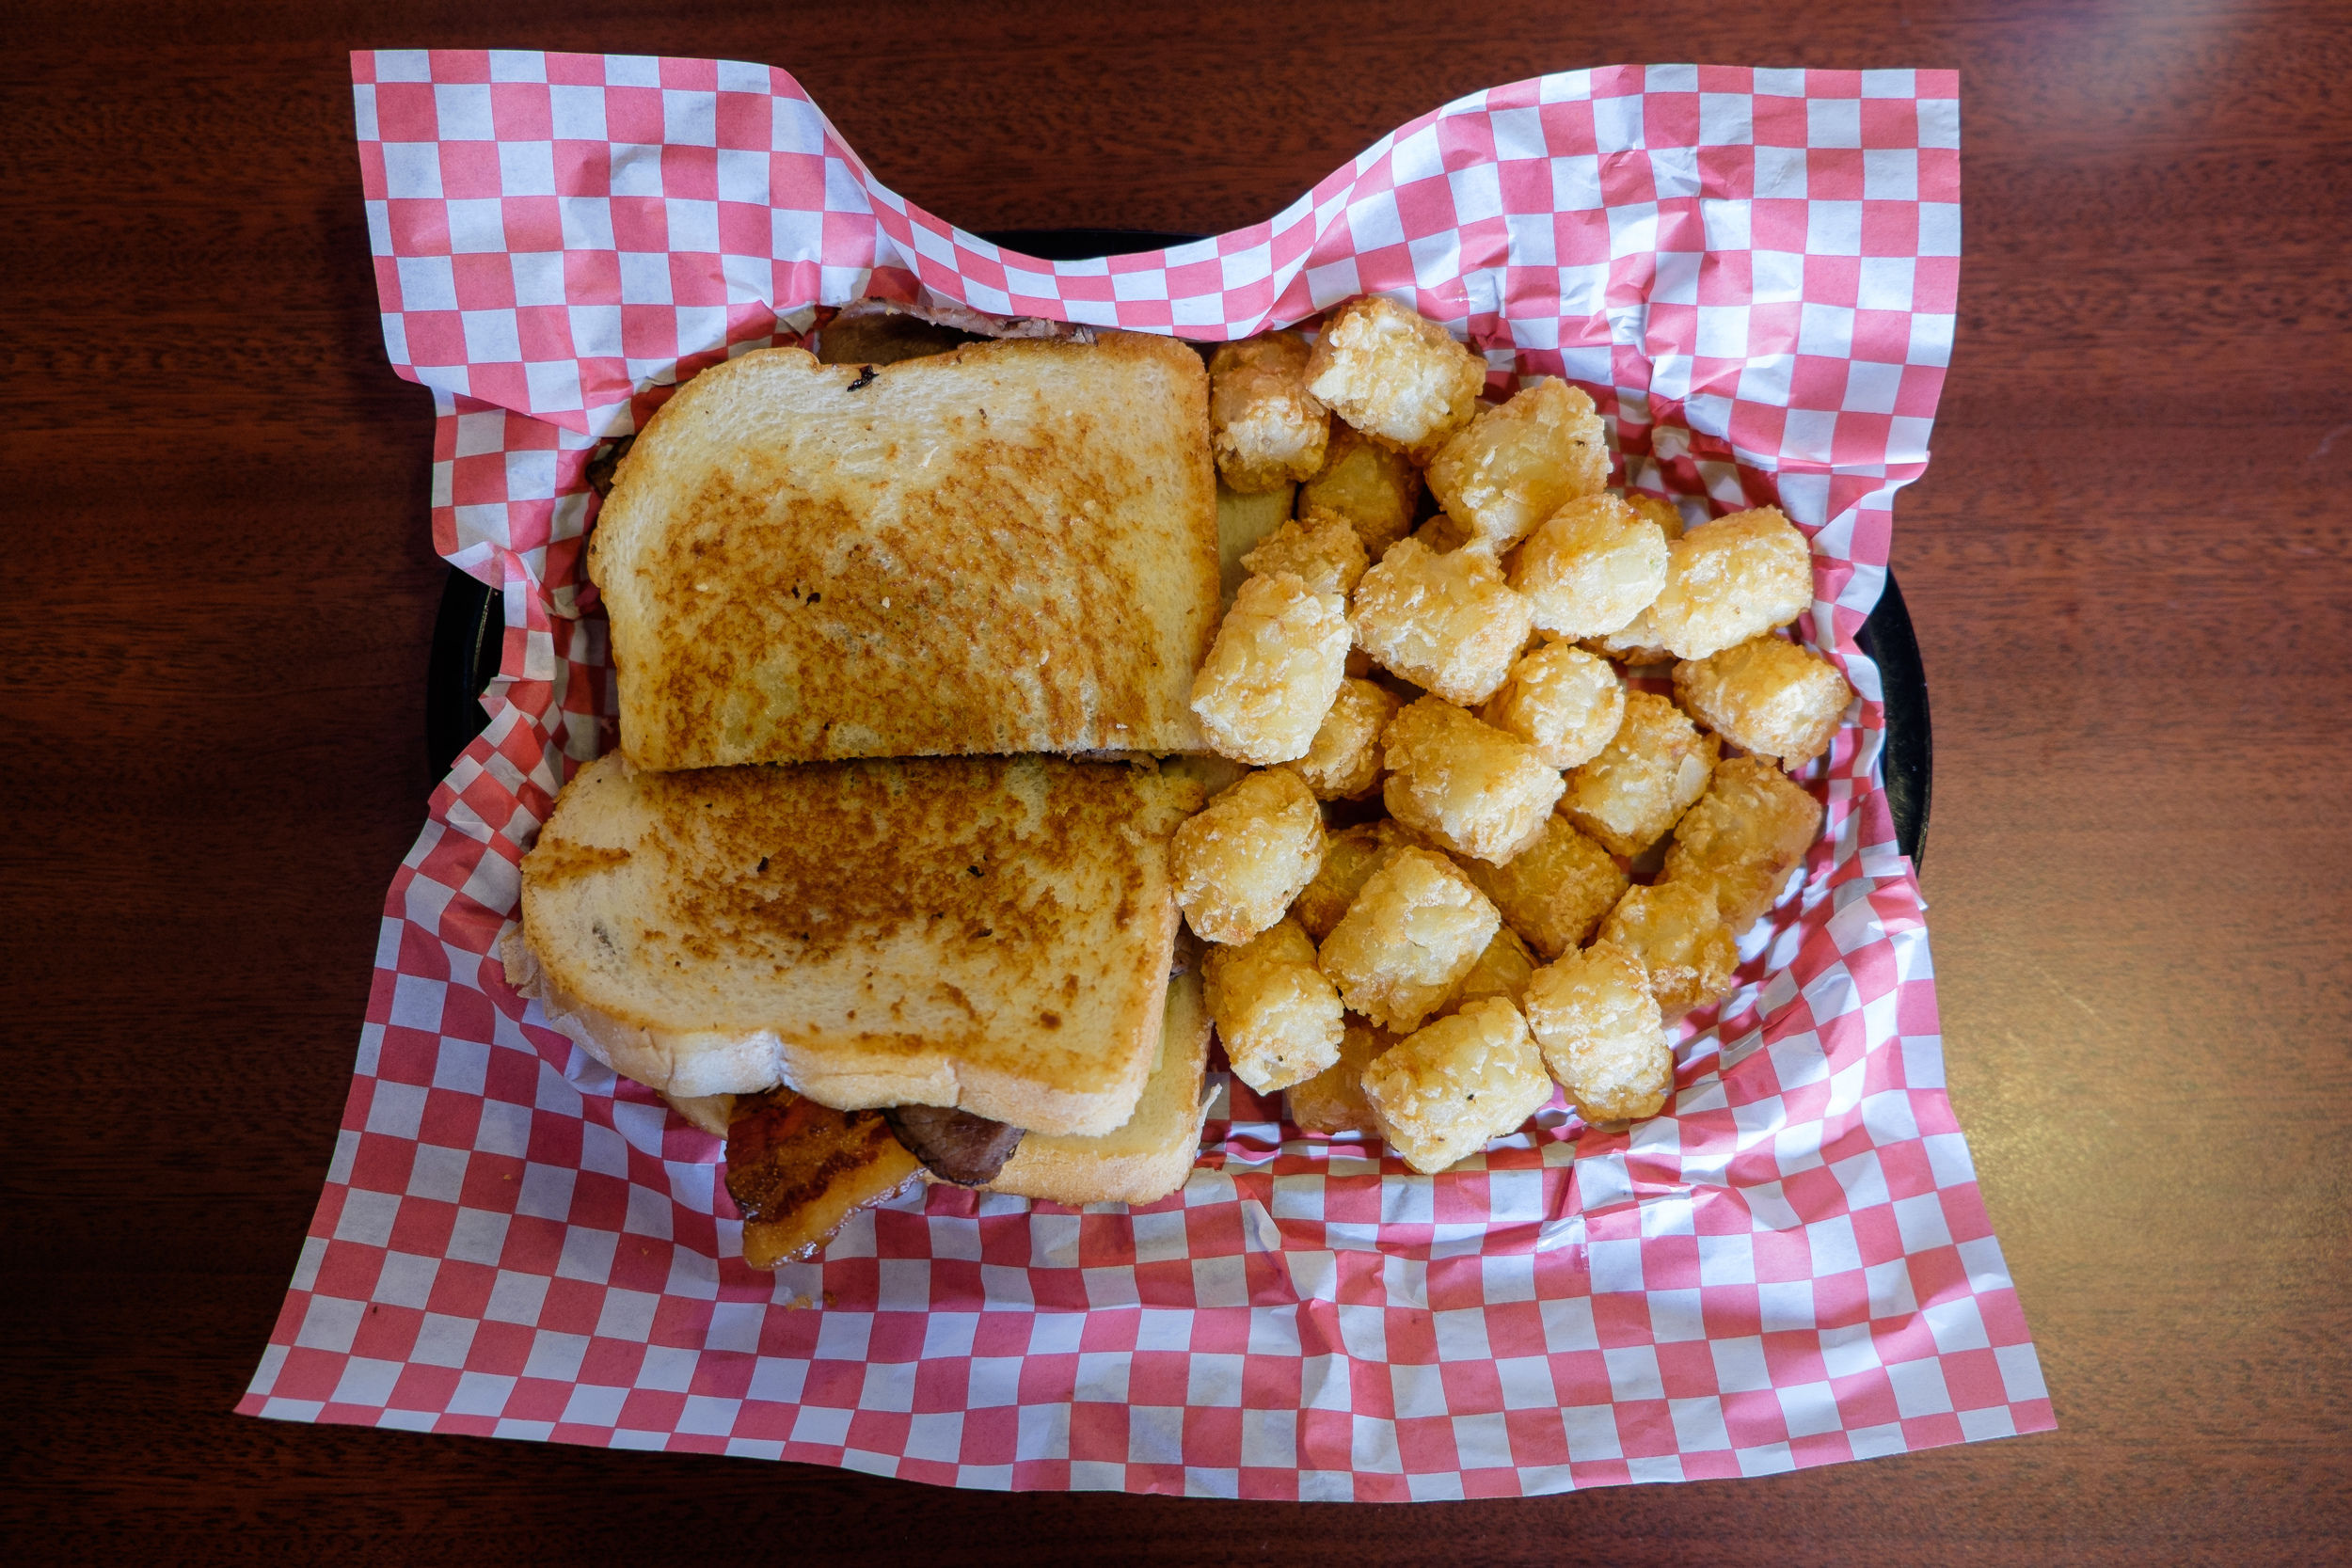 Grilled cheese with bacon and a side of tots. Classic.